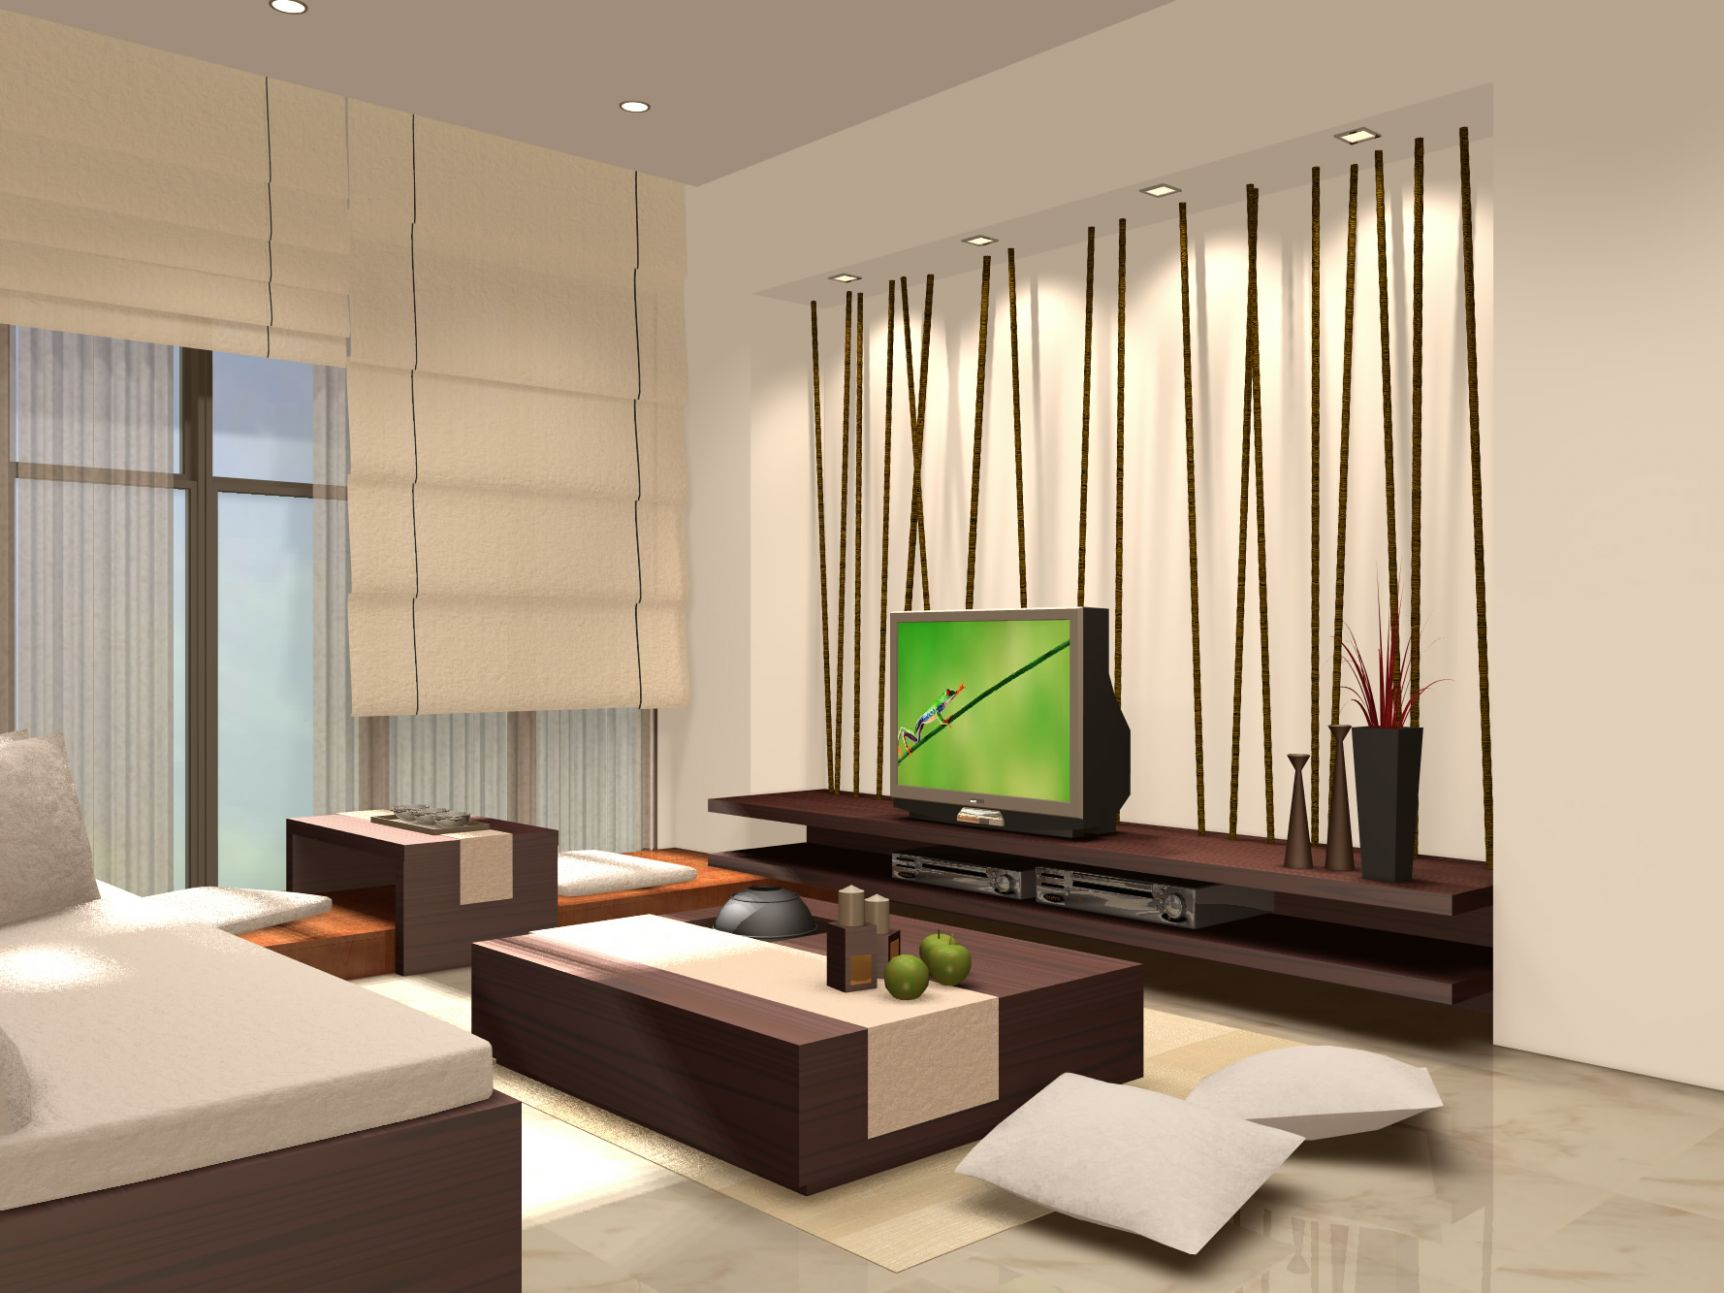 Living Room Zen Narrow Space With Black Wall Units And Small ...